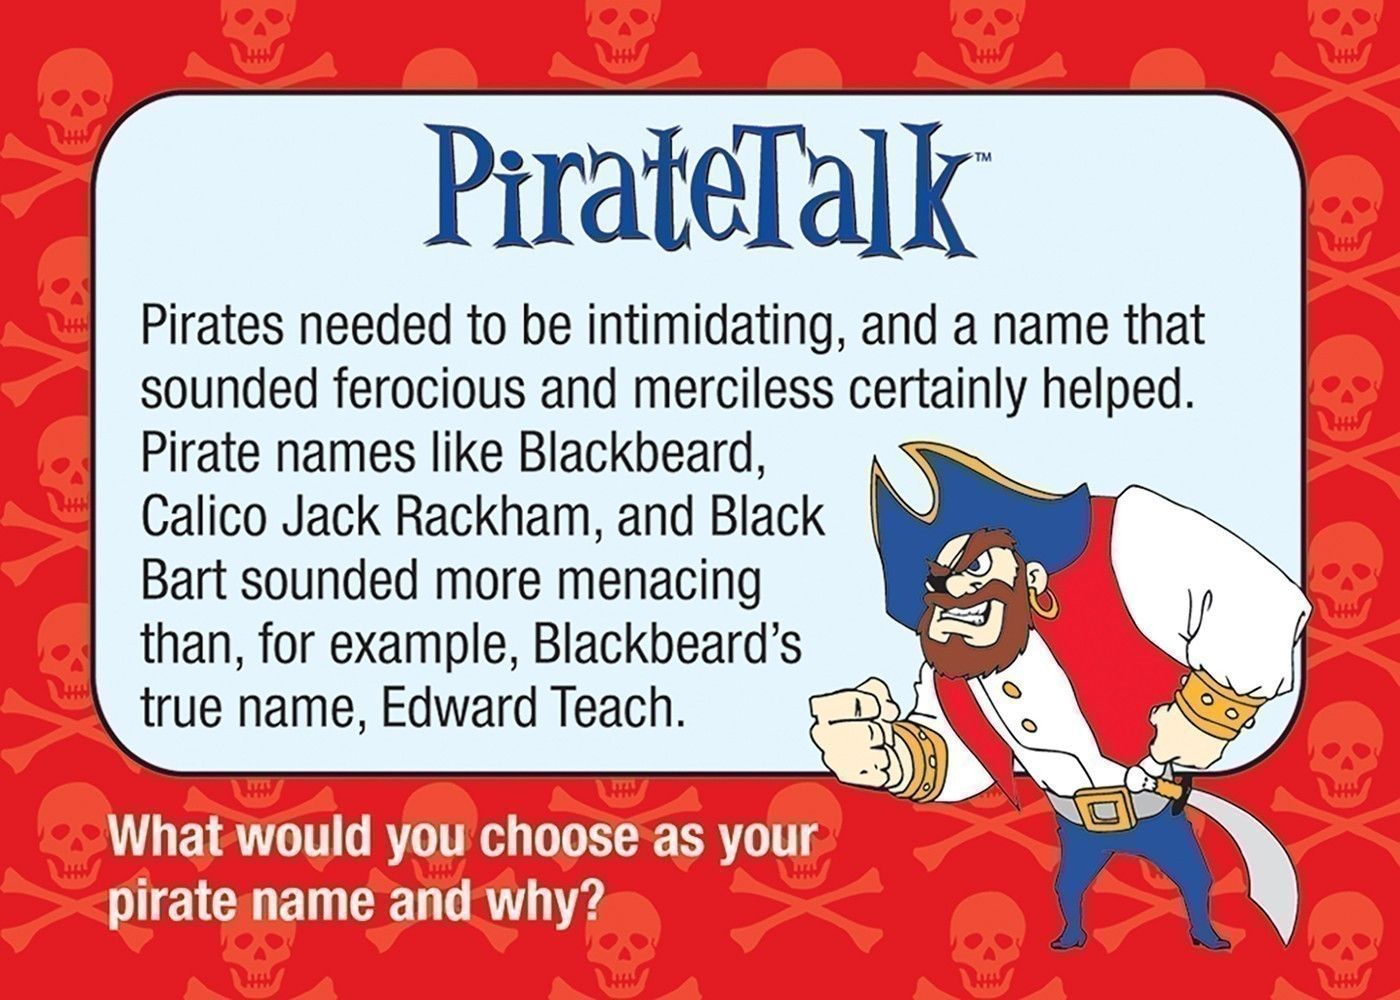 PirateTalk™